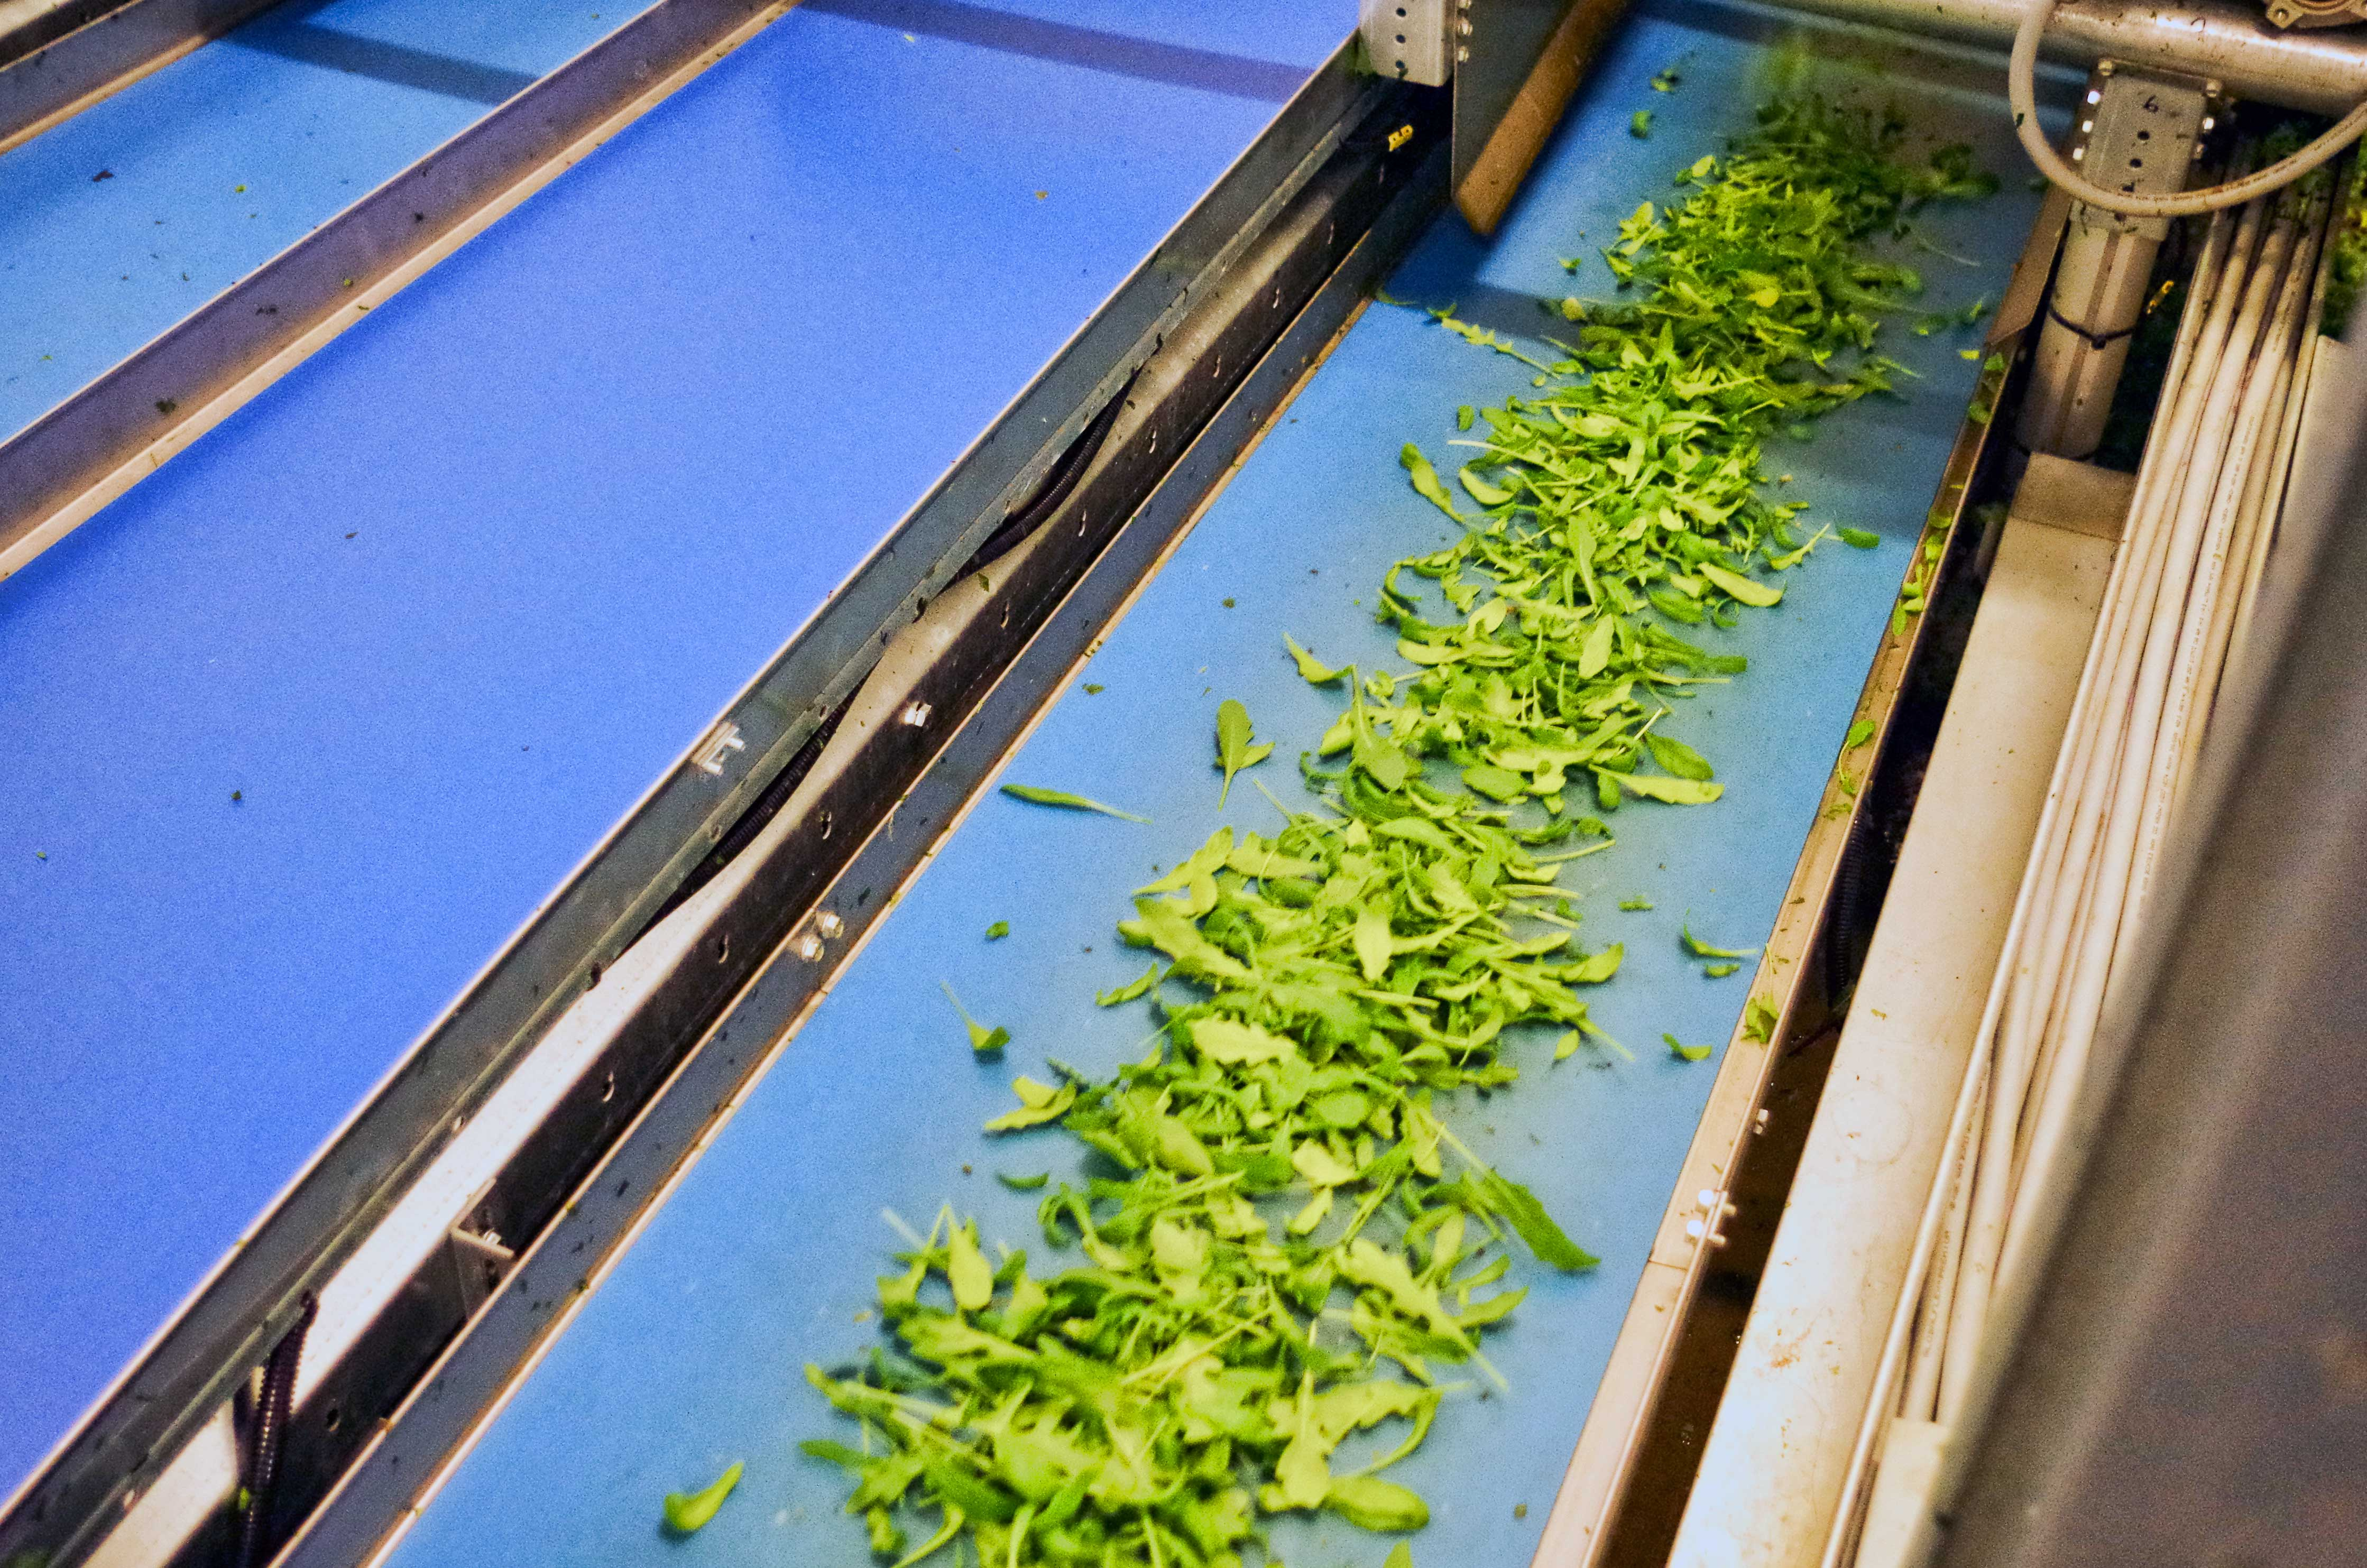 Harvested arugula headed through the packaging/greens mixing machine